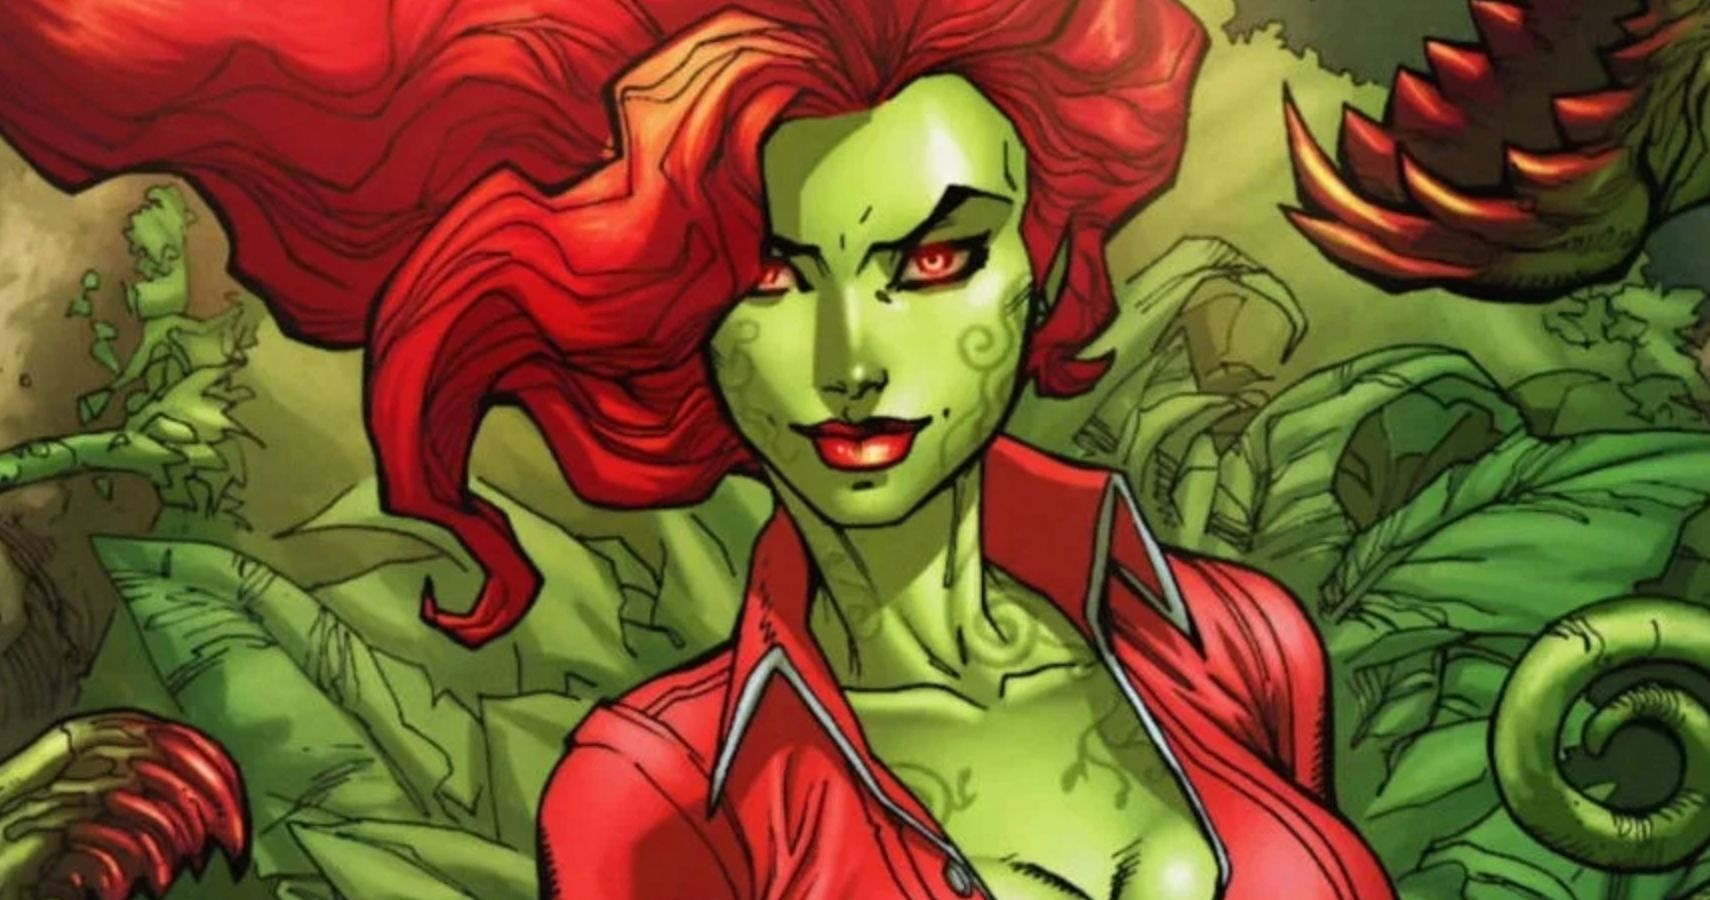 Poison Ivy The 10 Worst Things The Batman Villain Has Ever Done